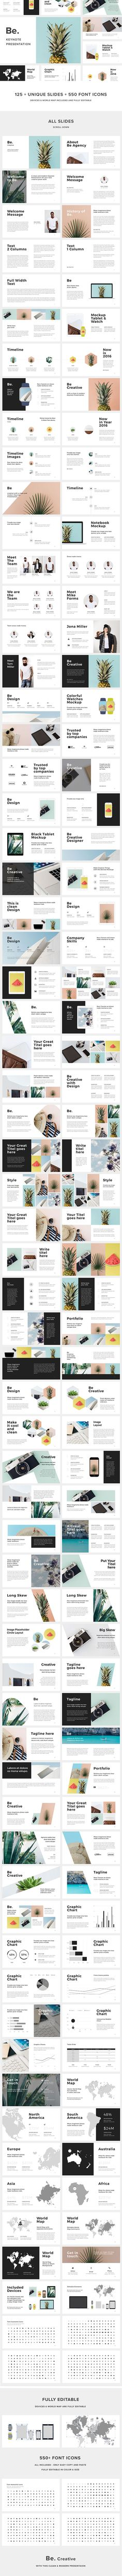 Be. Keynote Presentation Template • Only available here! → https://graphicriver.net/item/be-keynote-presentation/17118781?ref=pxcr